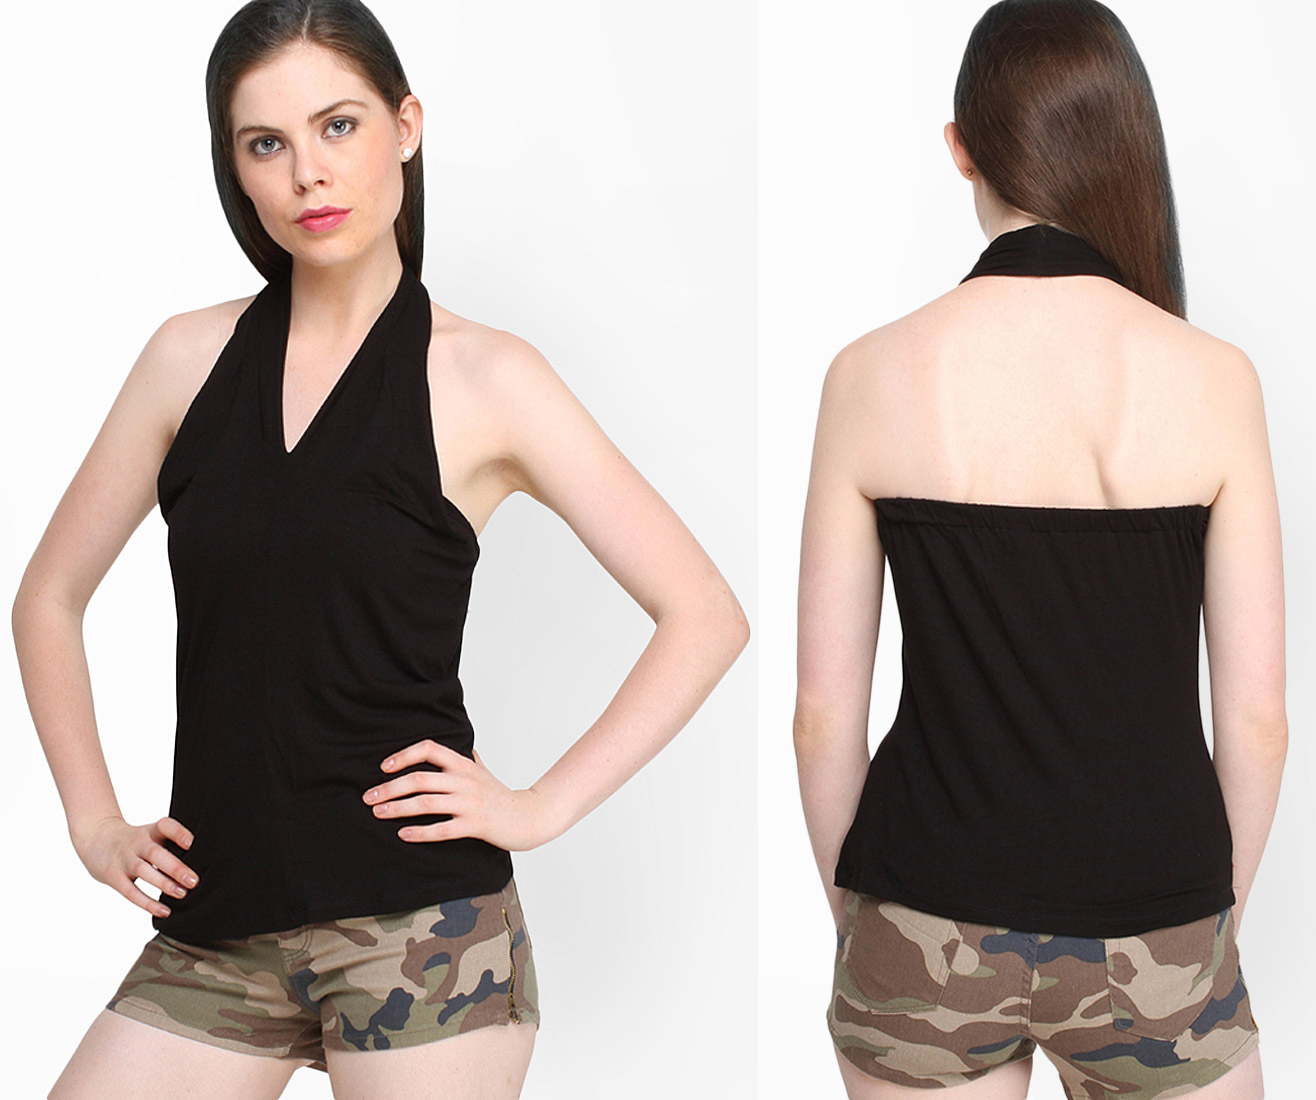 some advantages of the halter neck tops | jeniffer urmann | pulse | fnzzfac